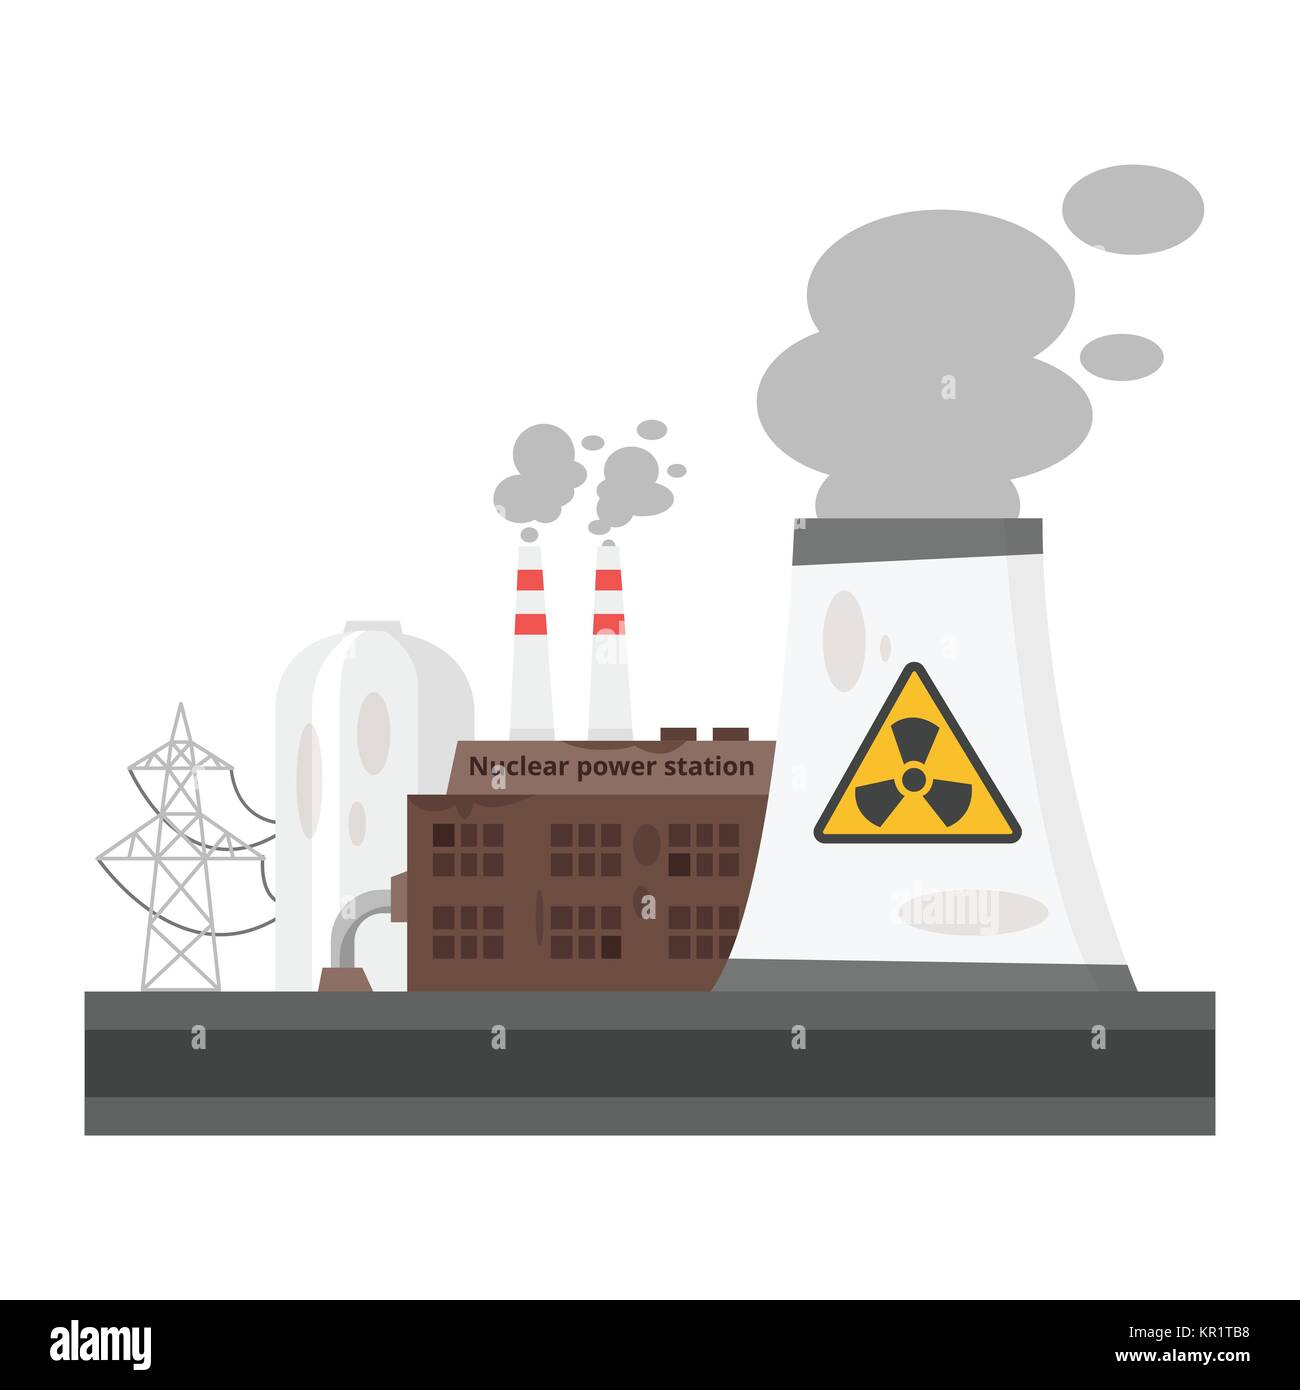 old nuclear power plant - Stock Vector